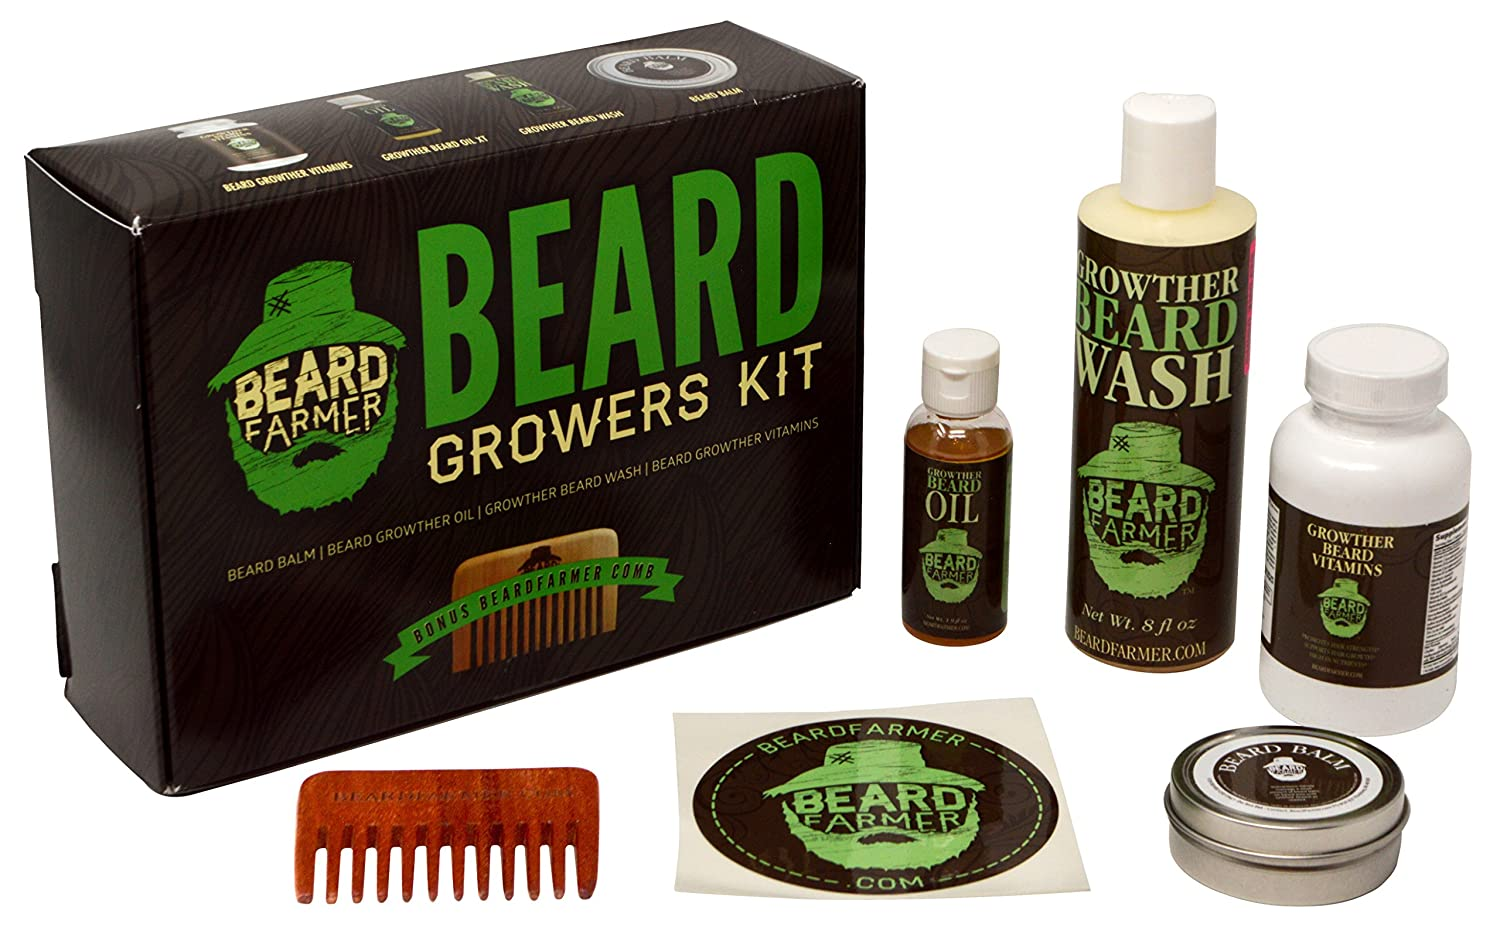 Ultimate Beard Growers Kit (Best Complete Beard Gift Set) Super SALE! 50% off this men's gift set. Naturally faster beard growth in every kit. Beard Farmers